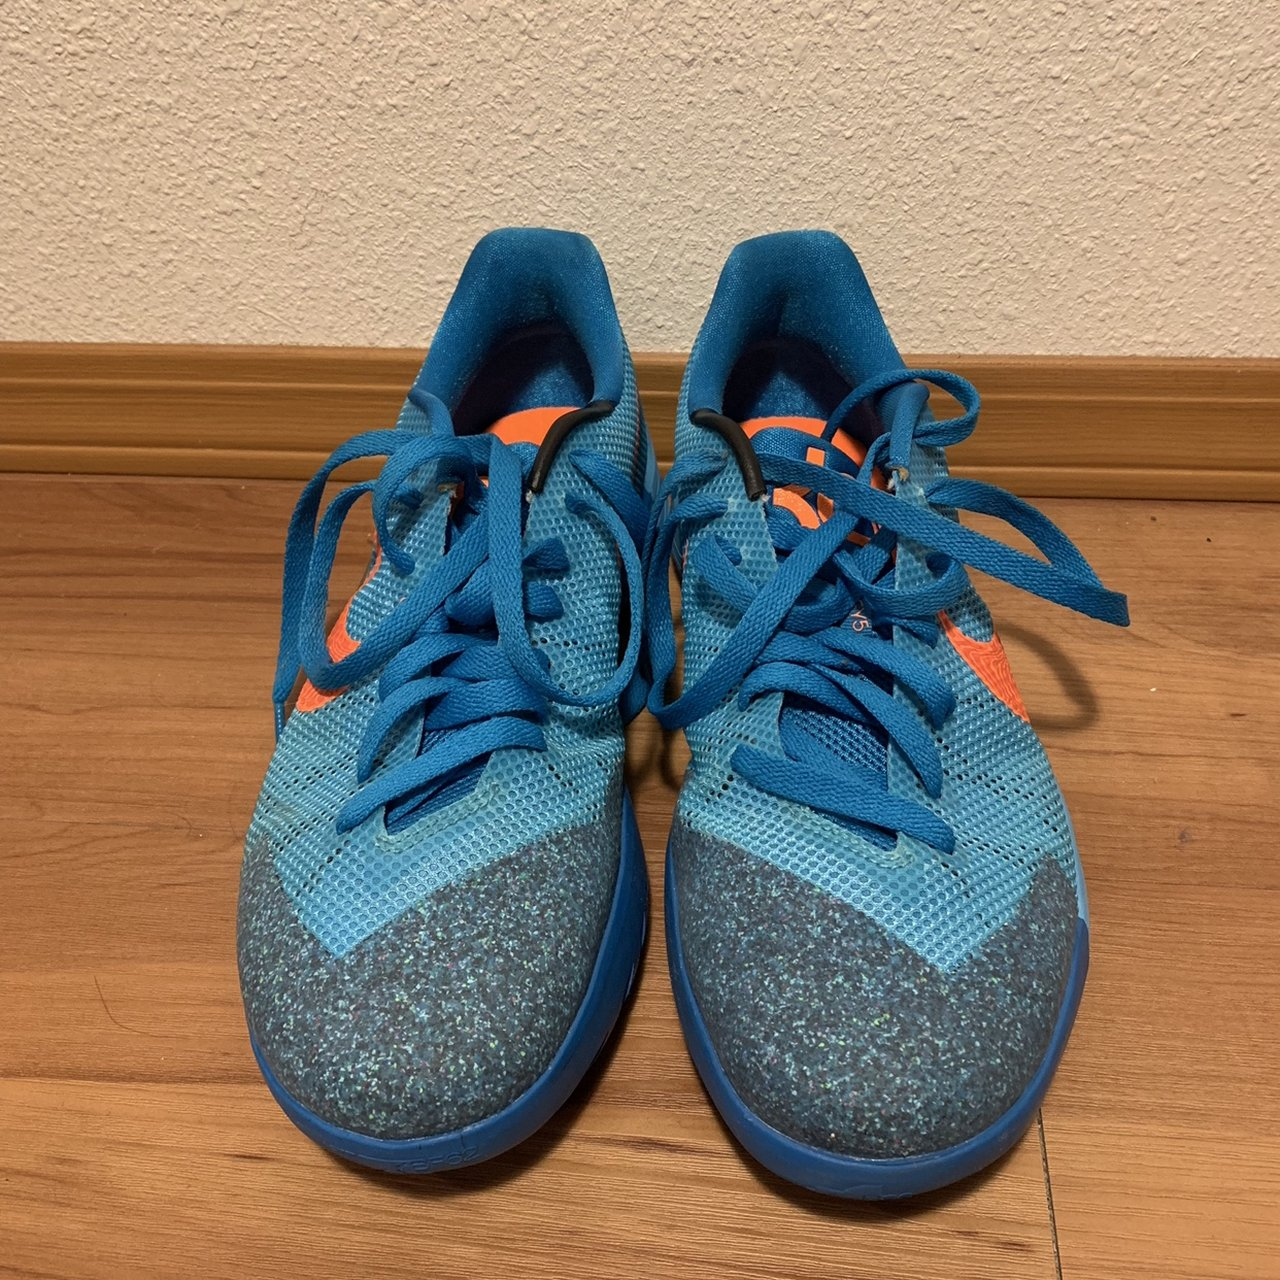 the best attitude 9ffa9 d1f97 Men s Nike KD Trey 5 flywire in the blue and orange color 10 - Depop